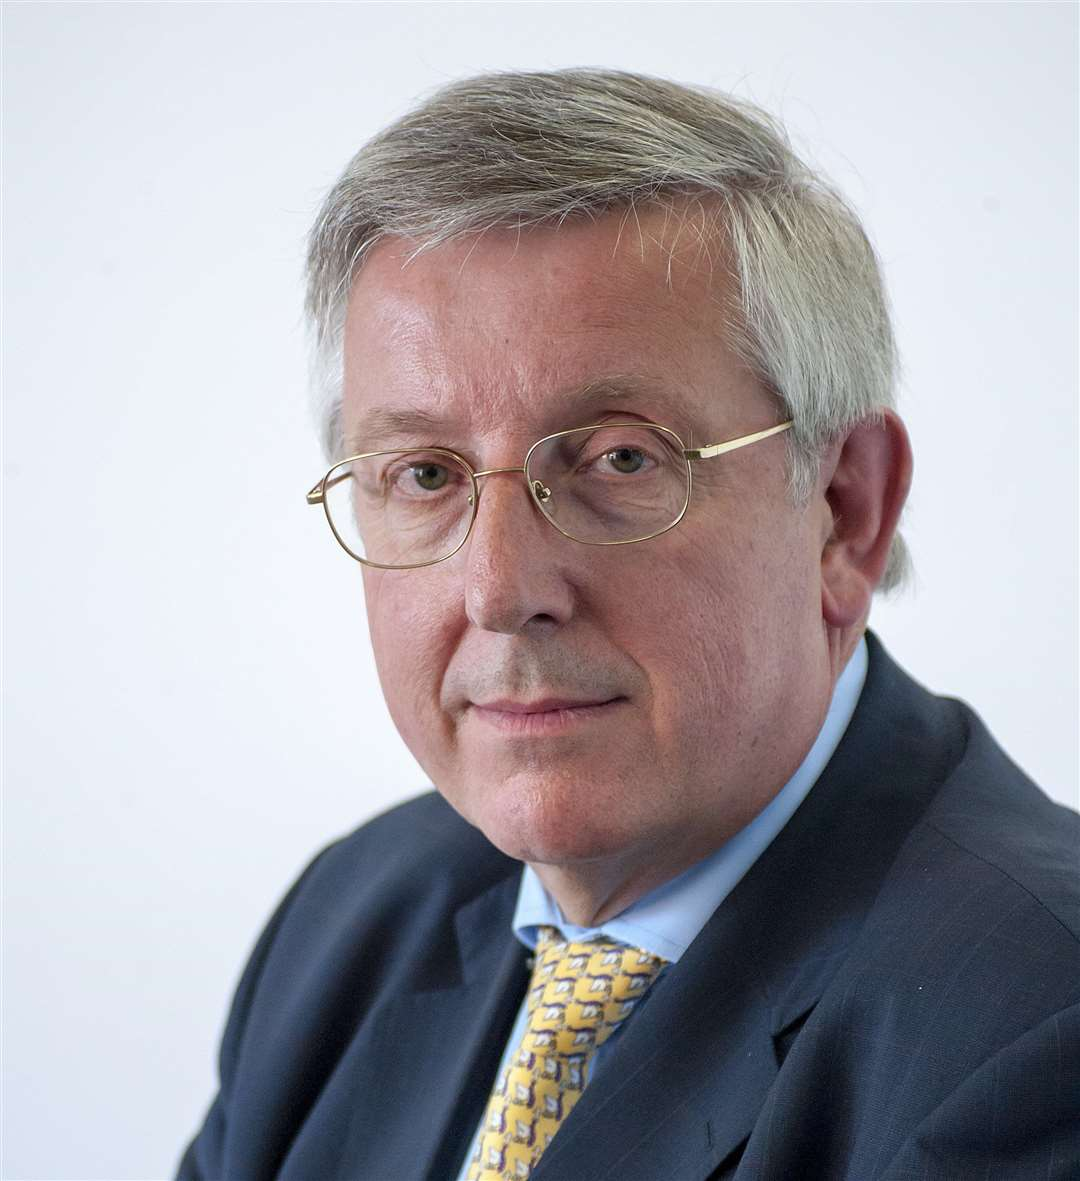 Cllr Gordon Jones, cabinet member for children's services,education and skills. (7554047)